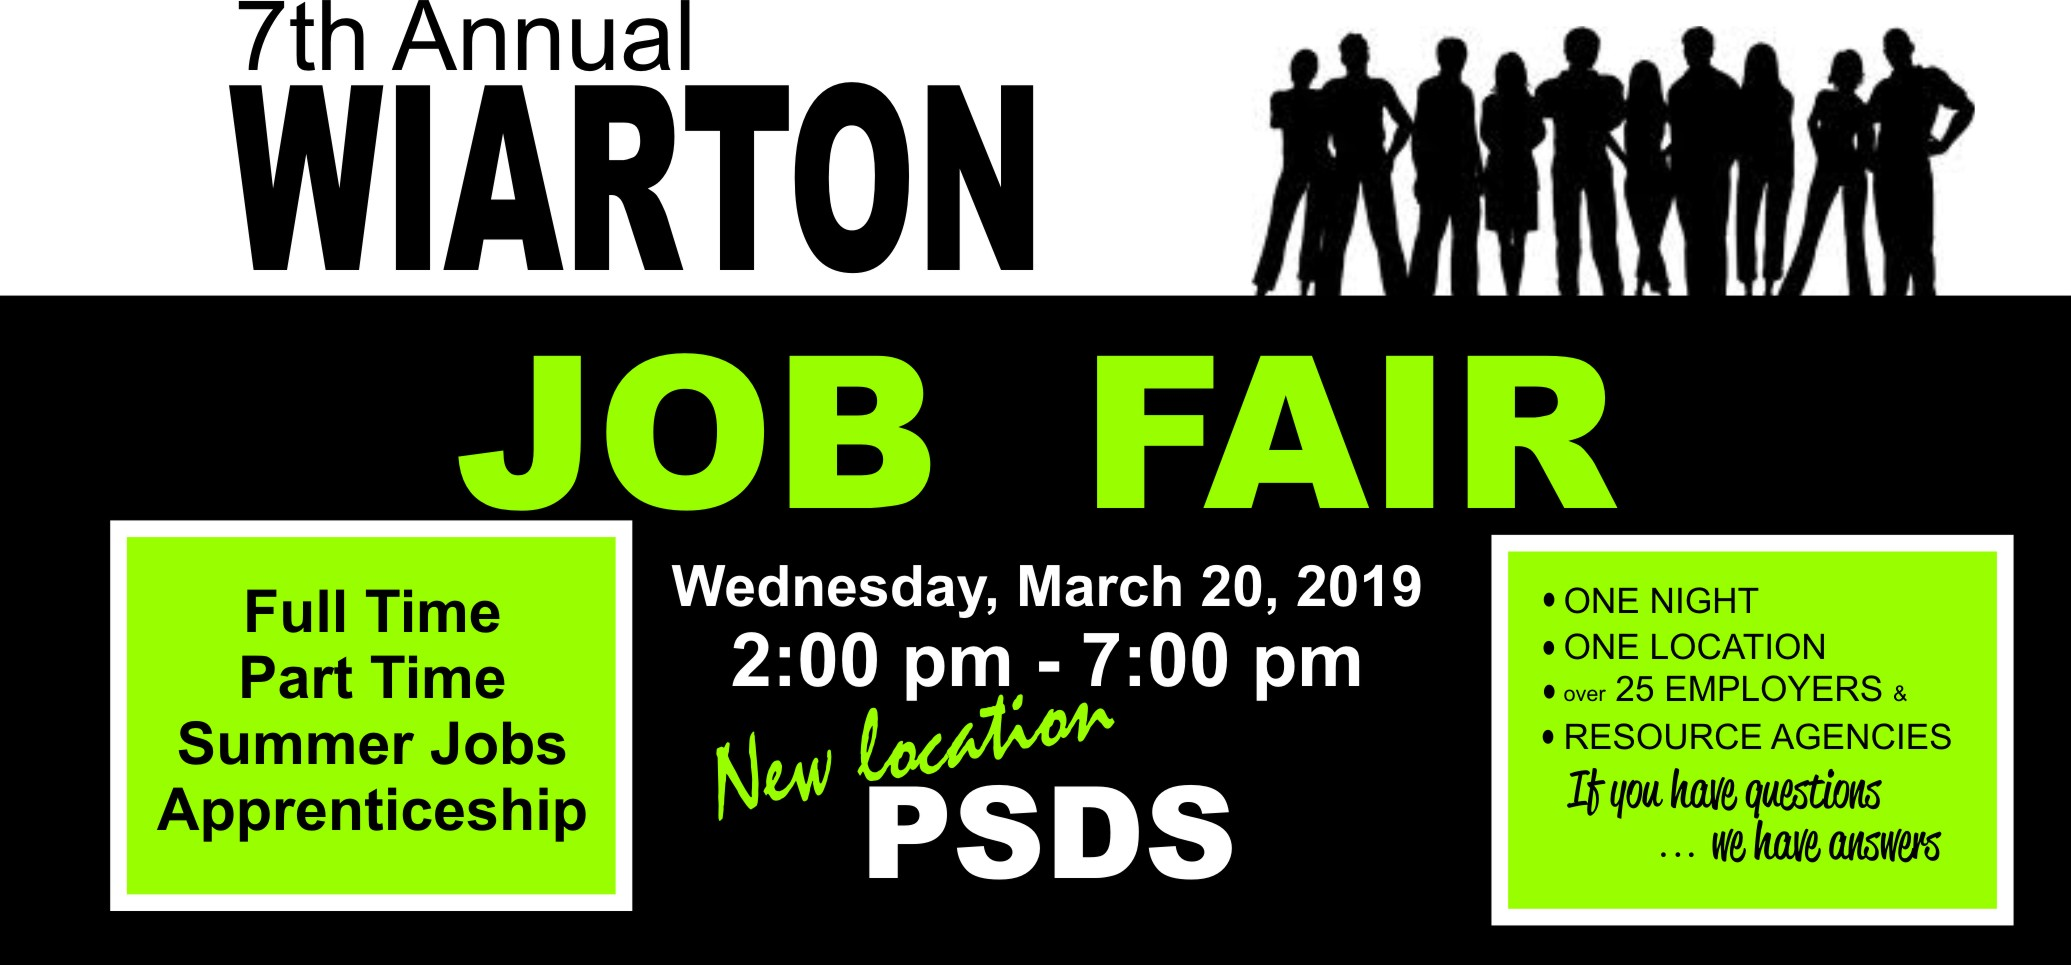 7th Annual Wiarton Job Fair